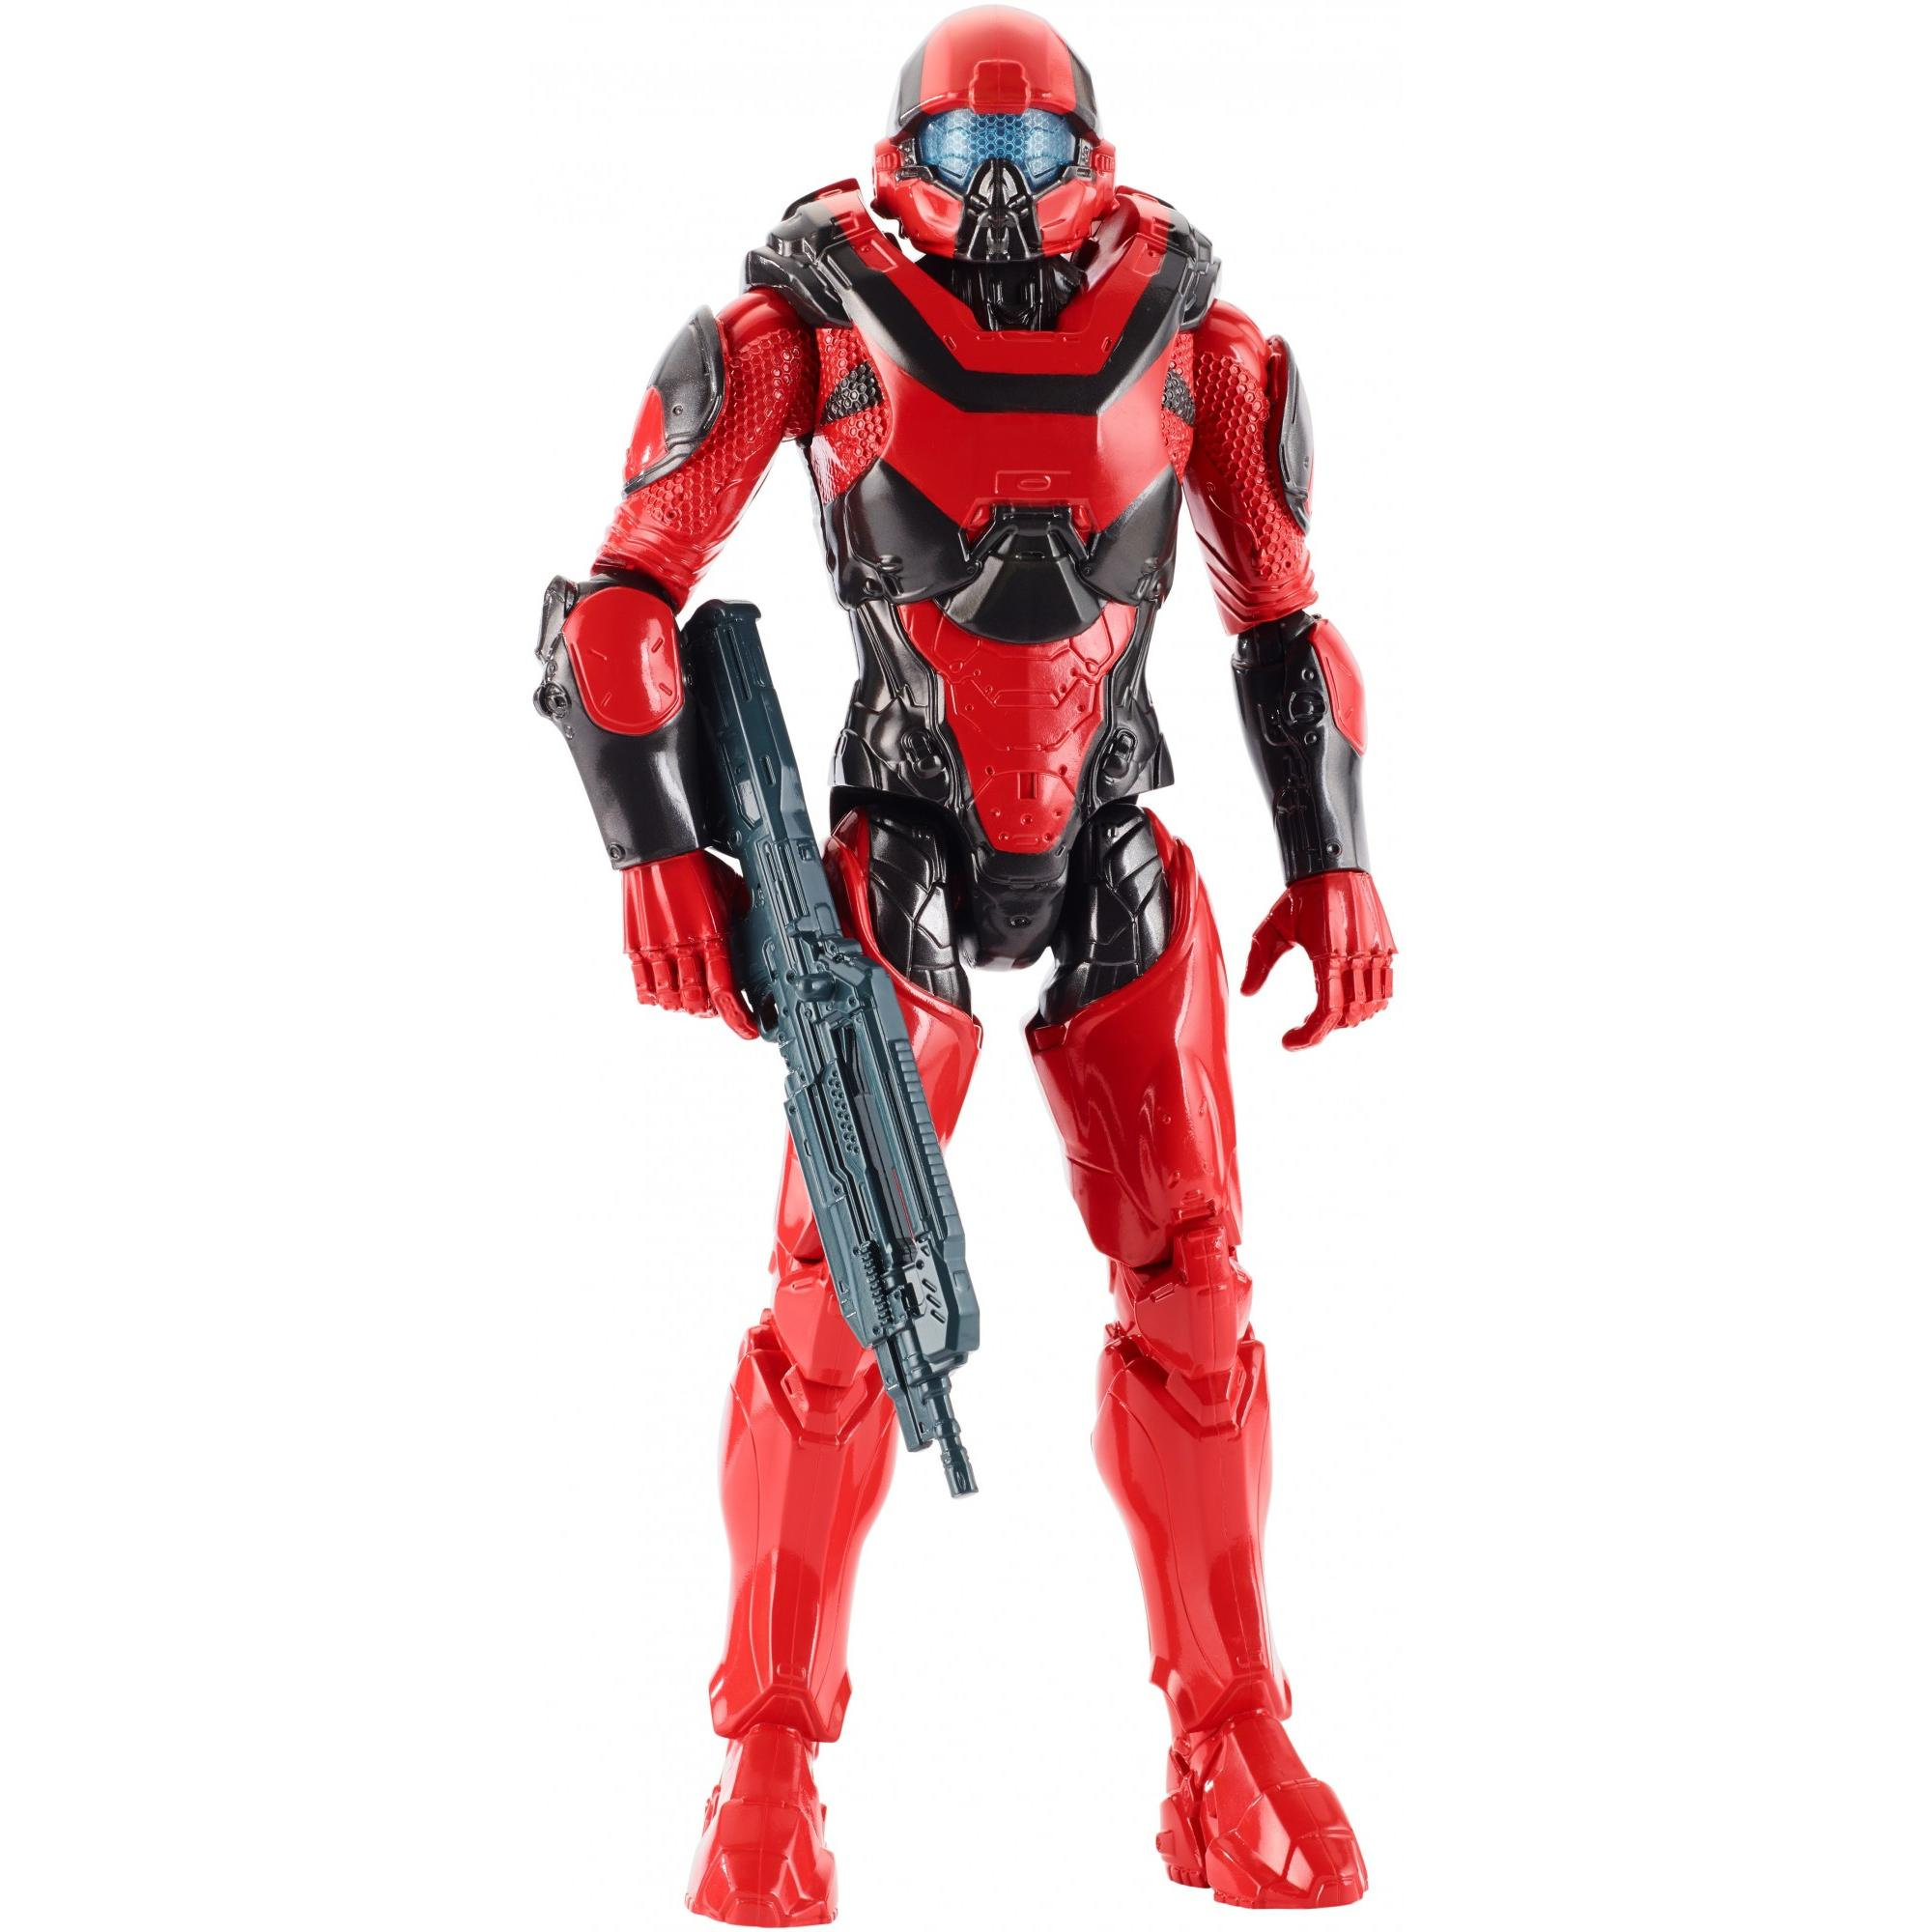 Halo Spartan Athalon Red Figure, 12""